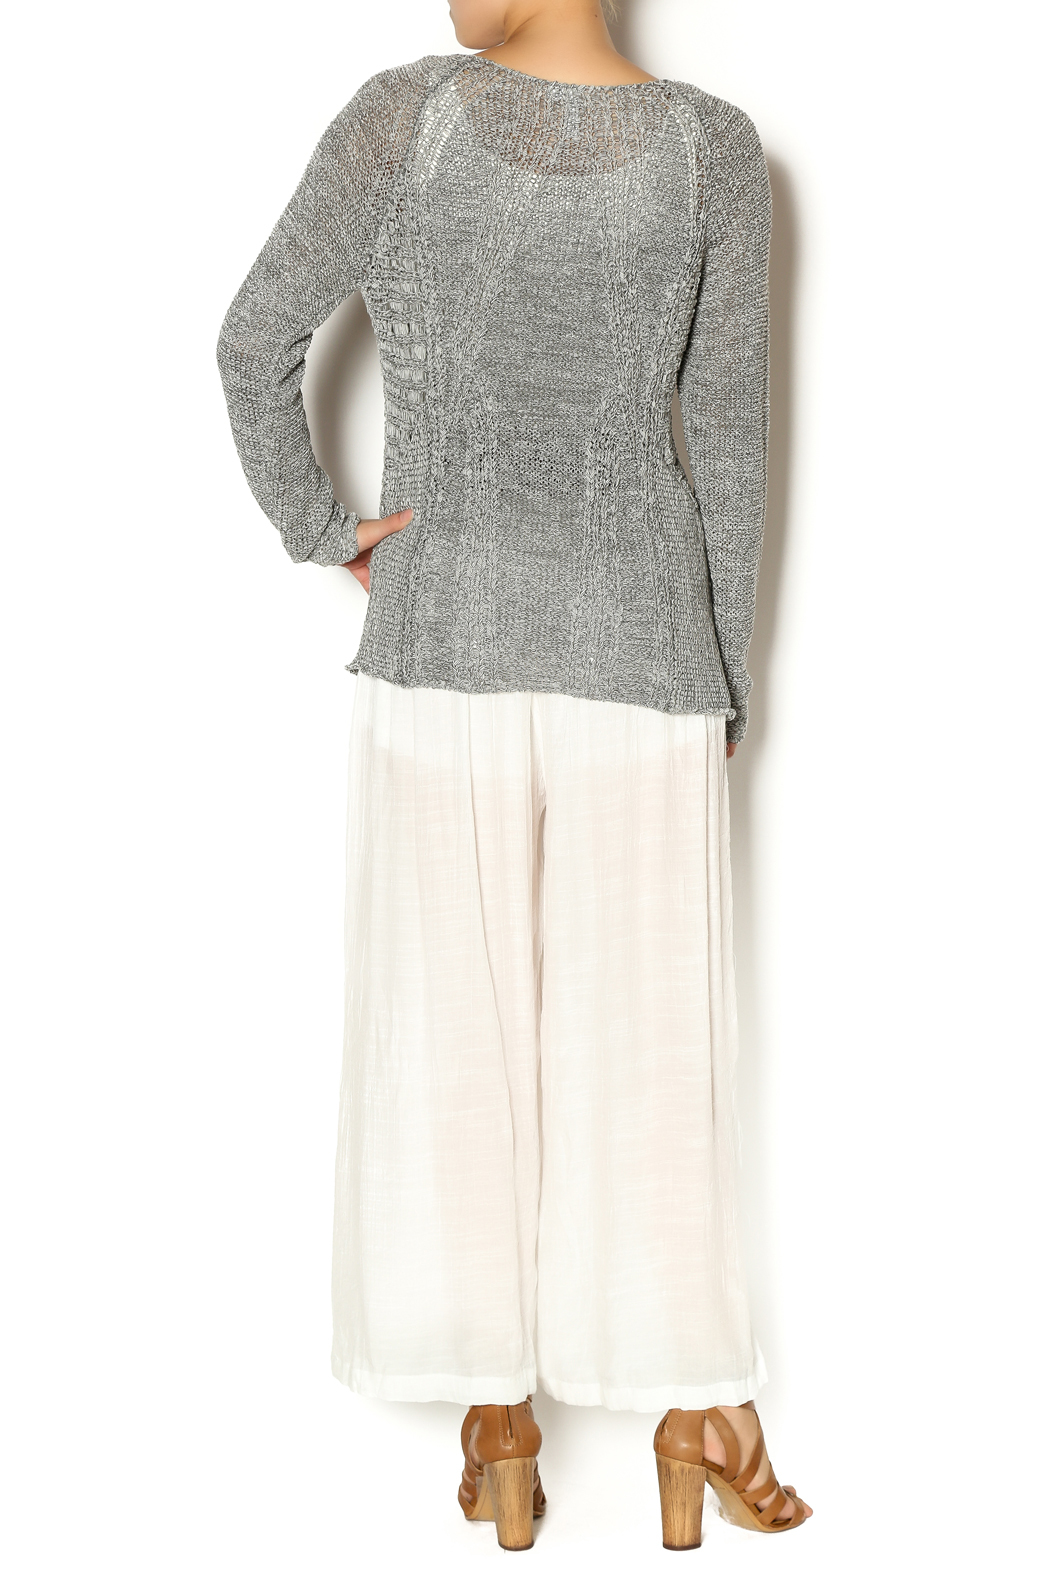 Katherine Barclay Gray Knit Sweater - Side Cropped Image